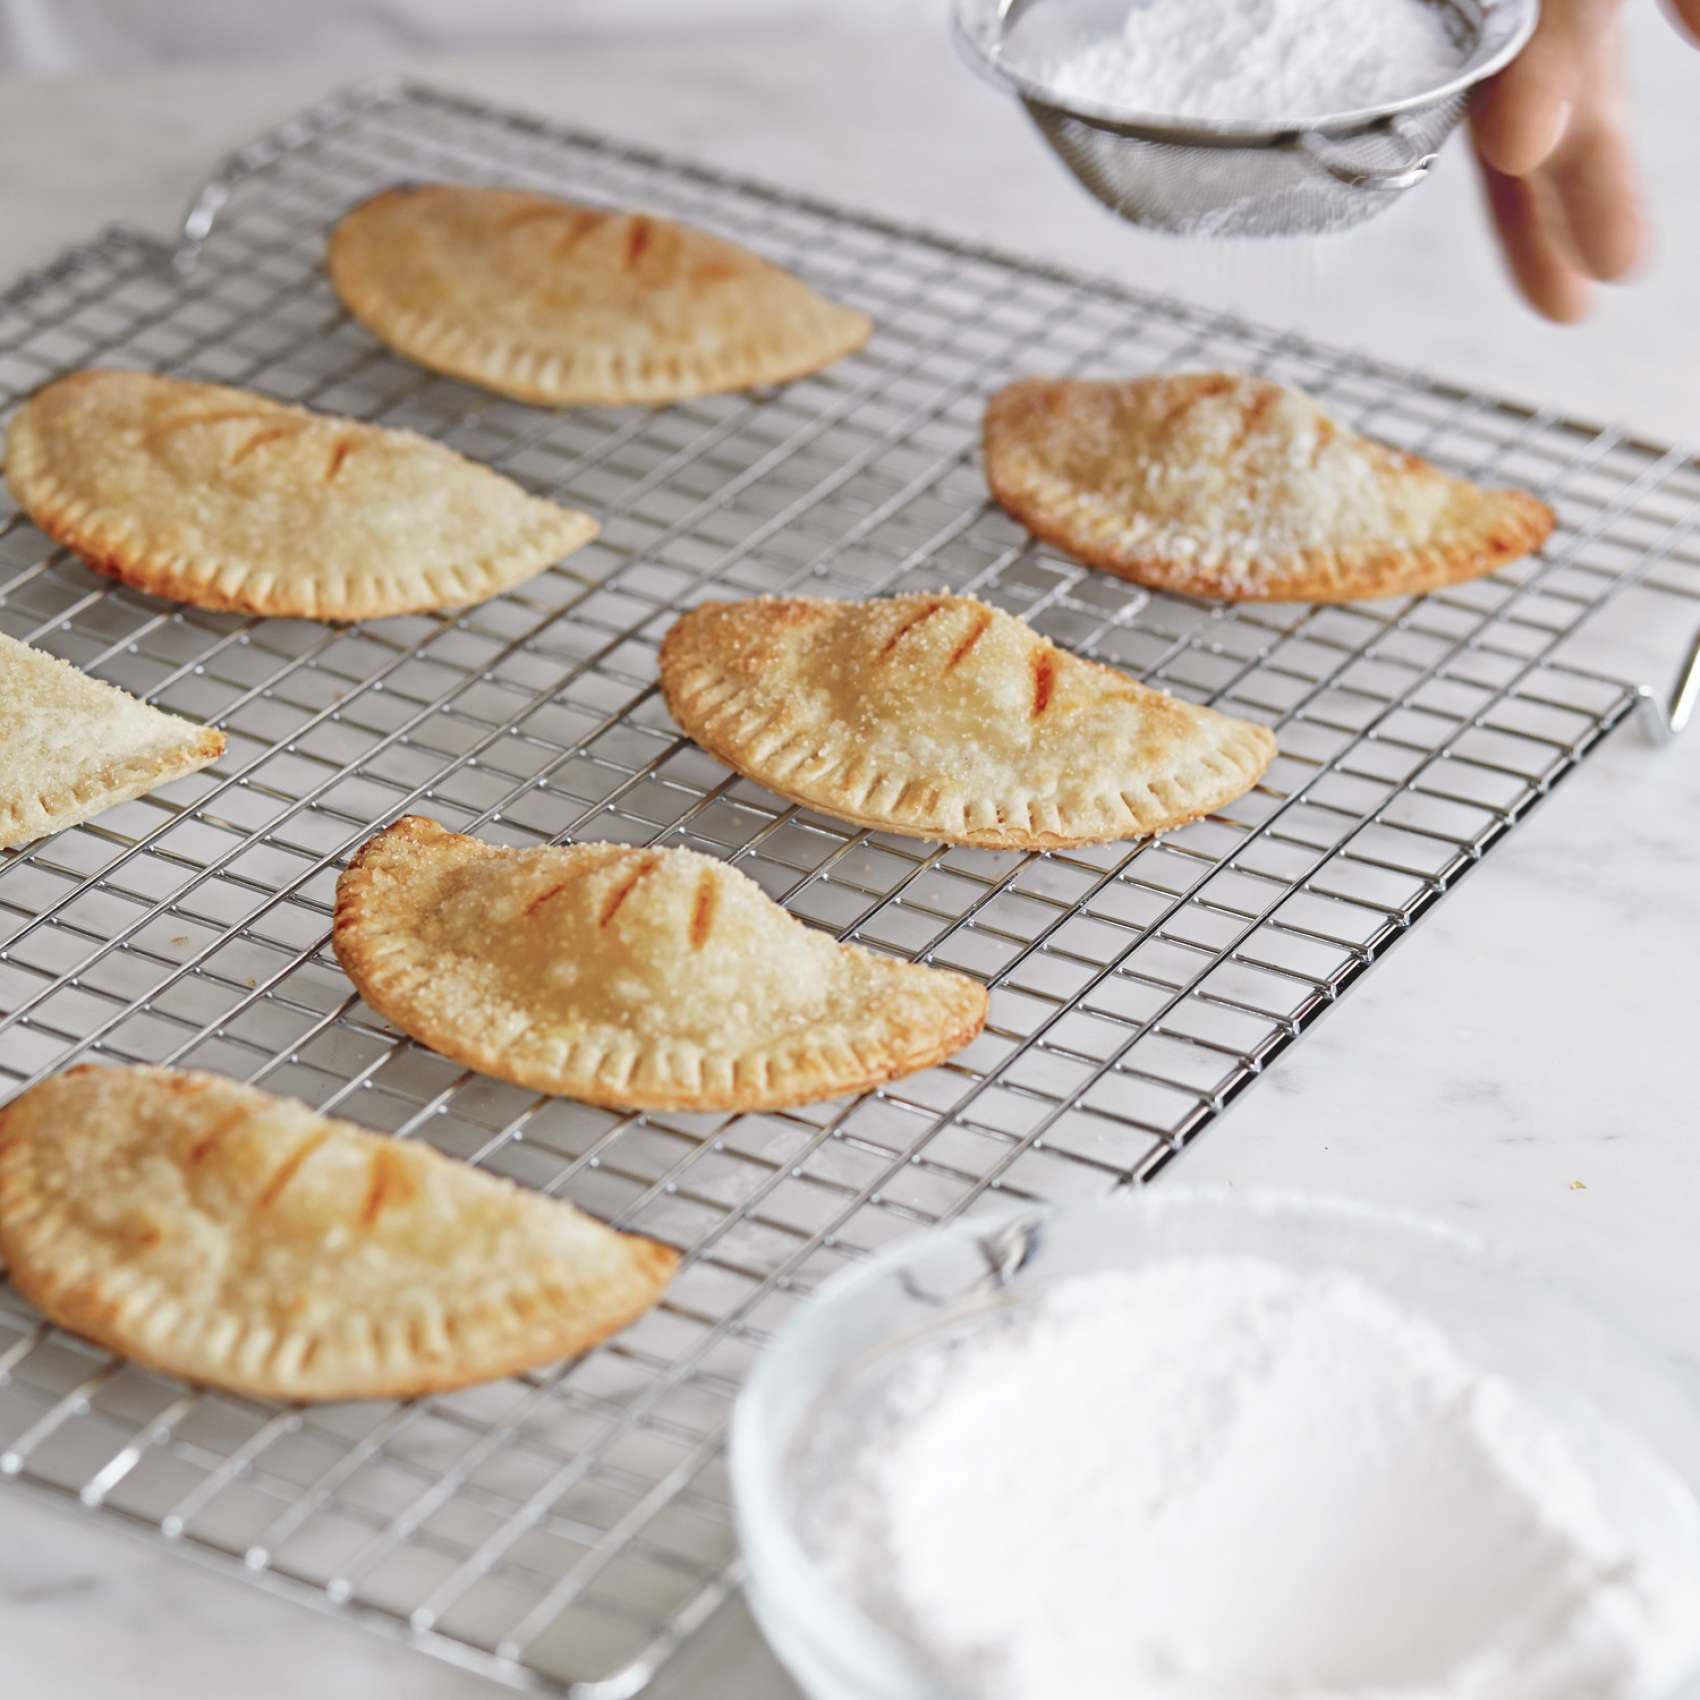 Stainless Steel Baking and Cooling Rack | Sur La Table